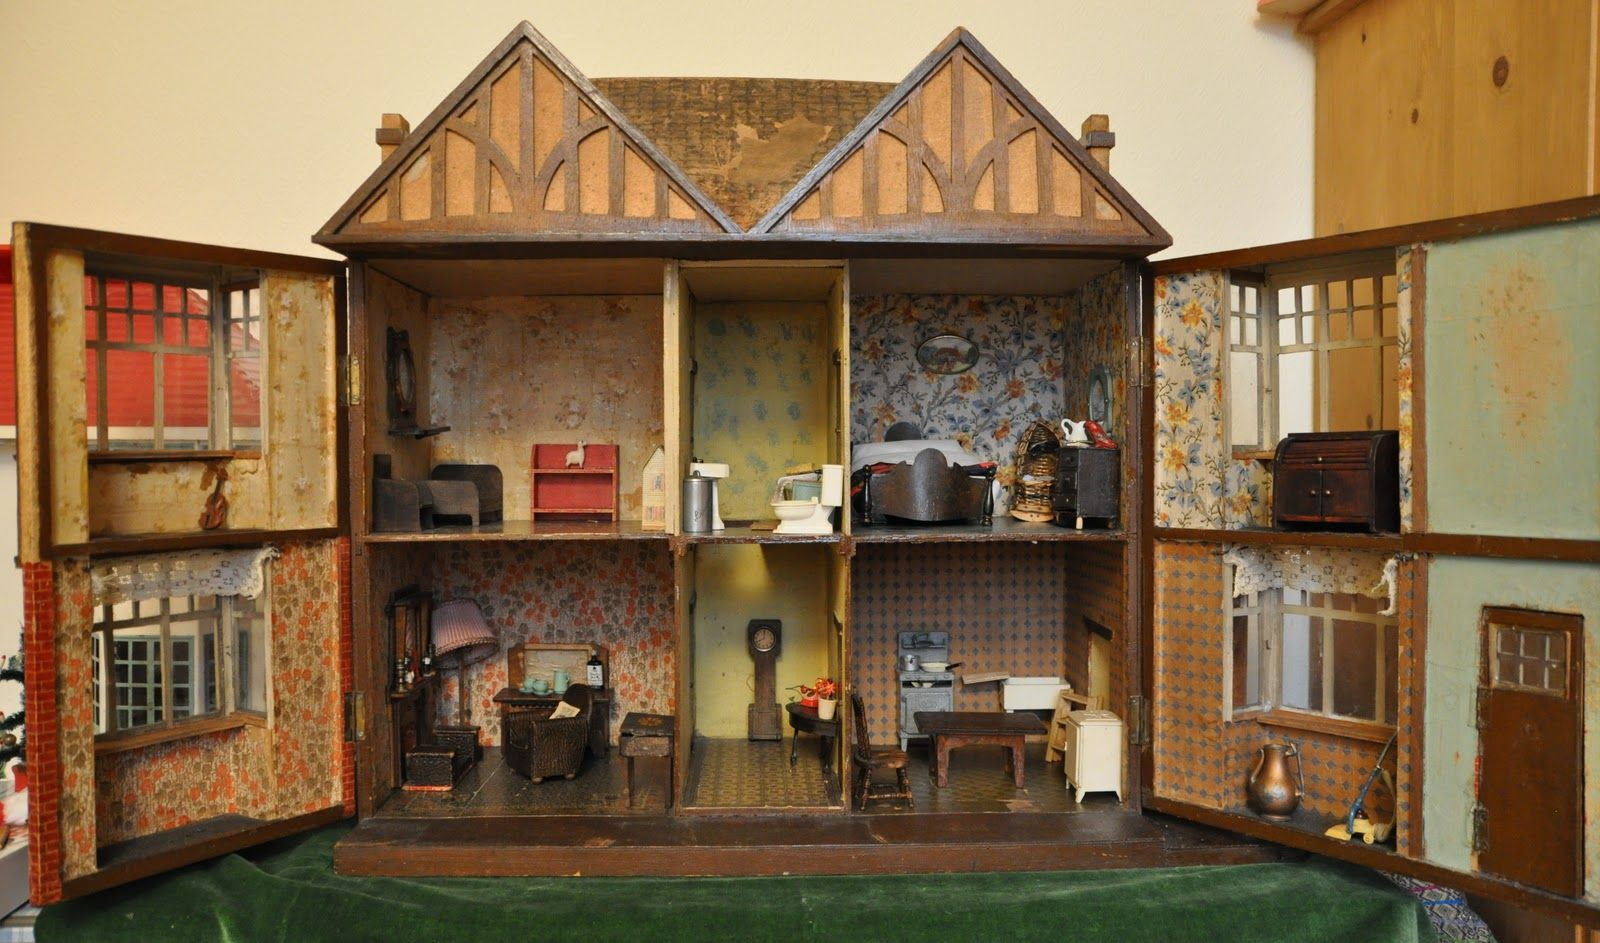 Dollshouse Days The Inside Of The House Babies Pinterest - Dolls house interior